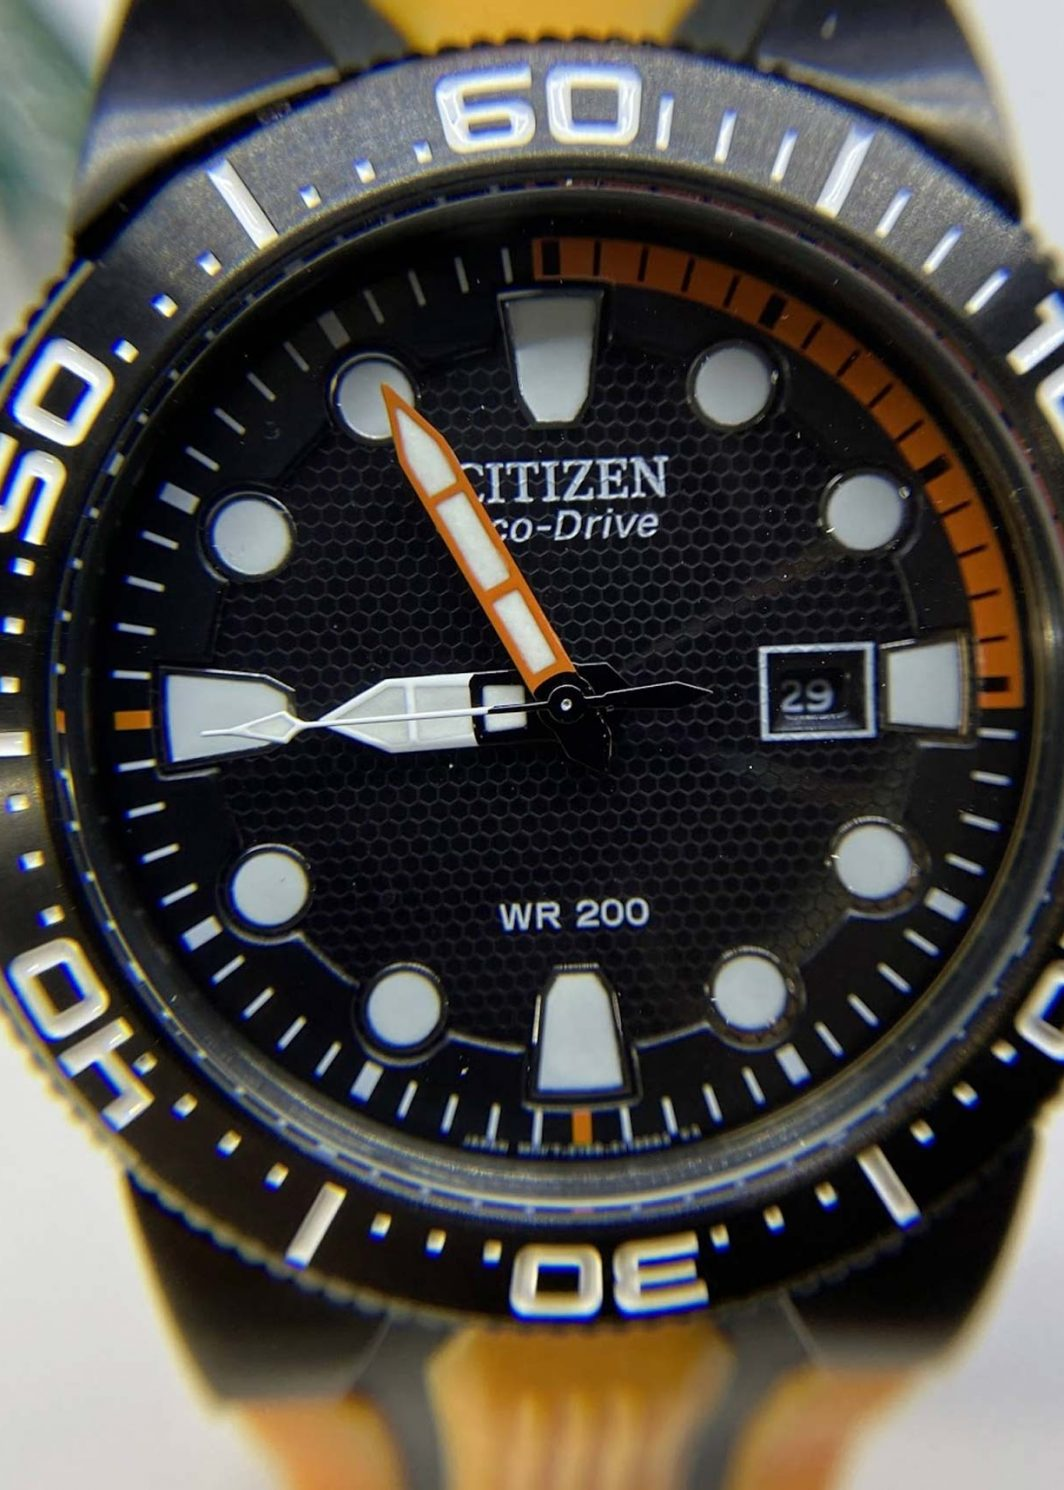 Gent's Scuba Fin Eco-Drive Watch